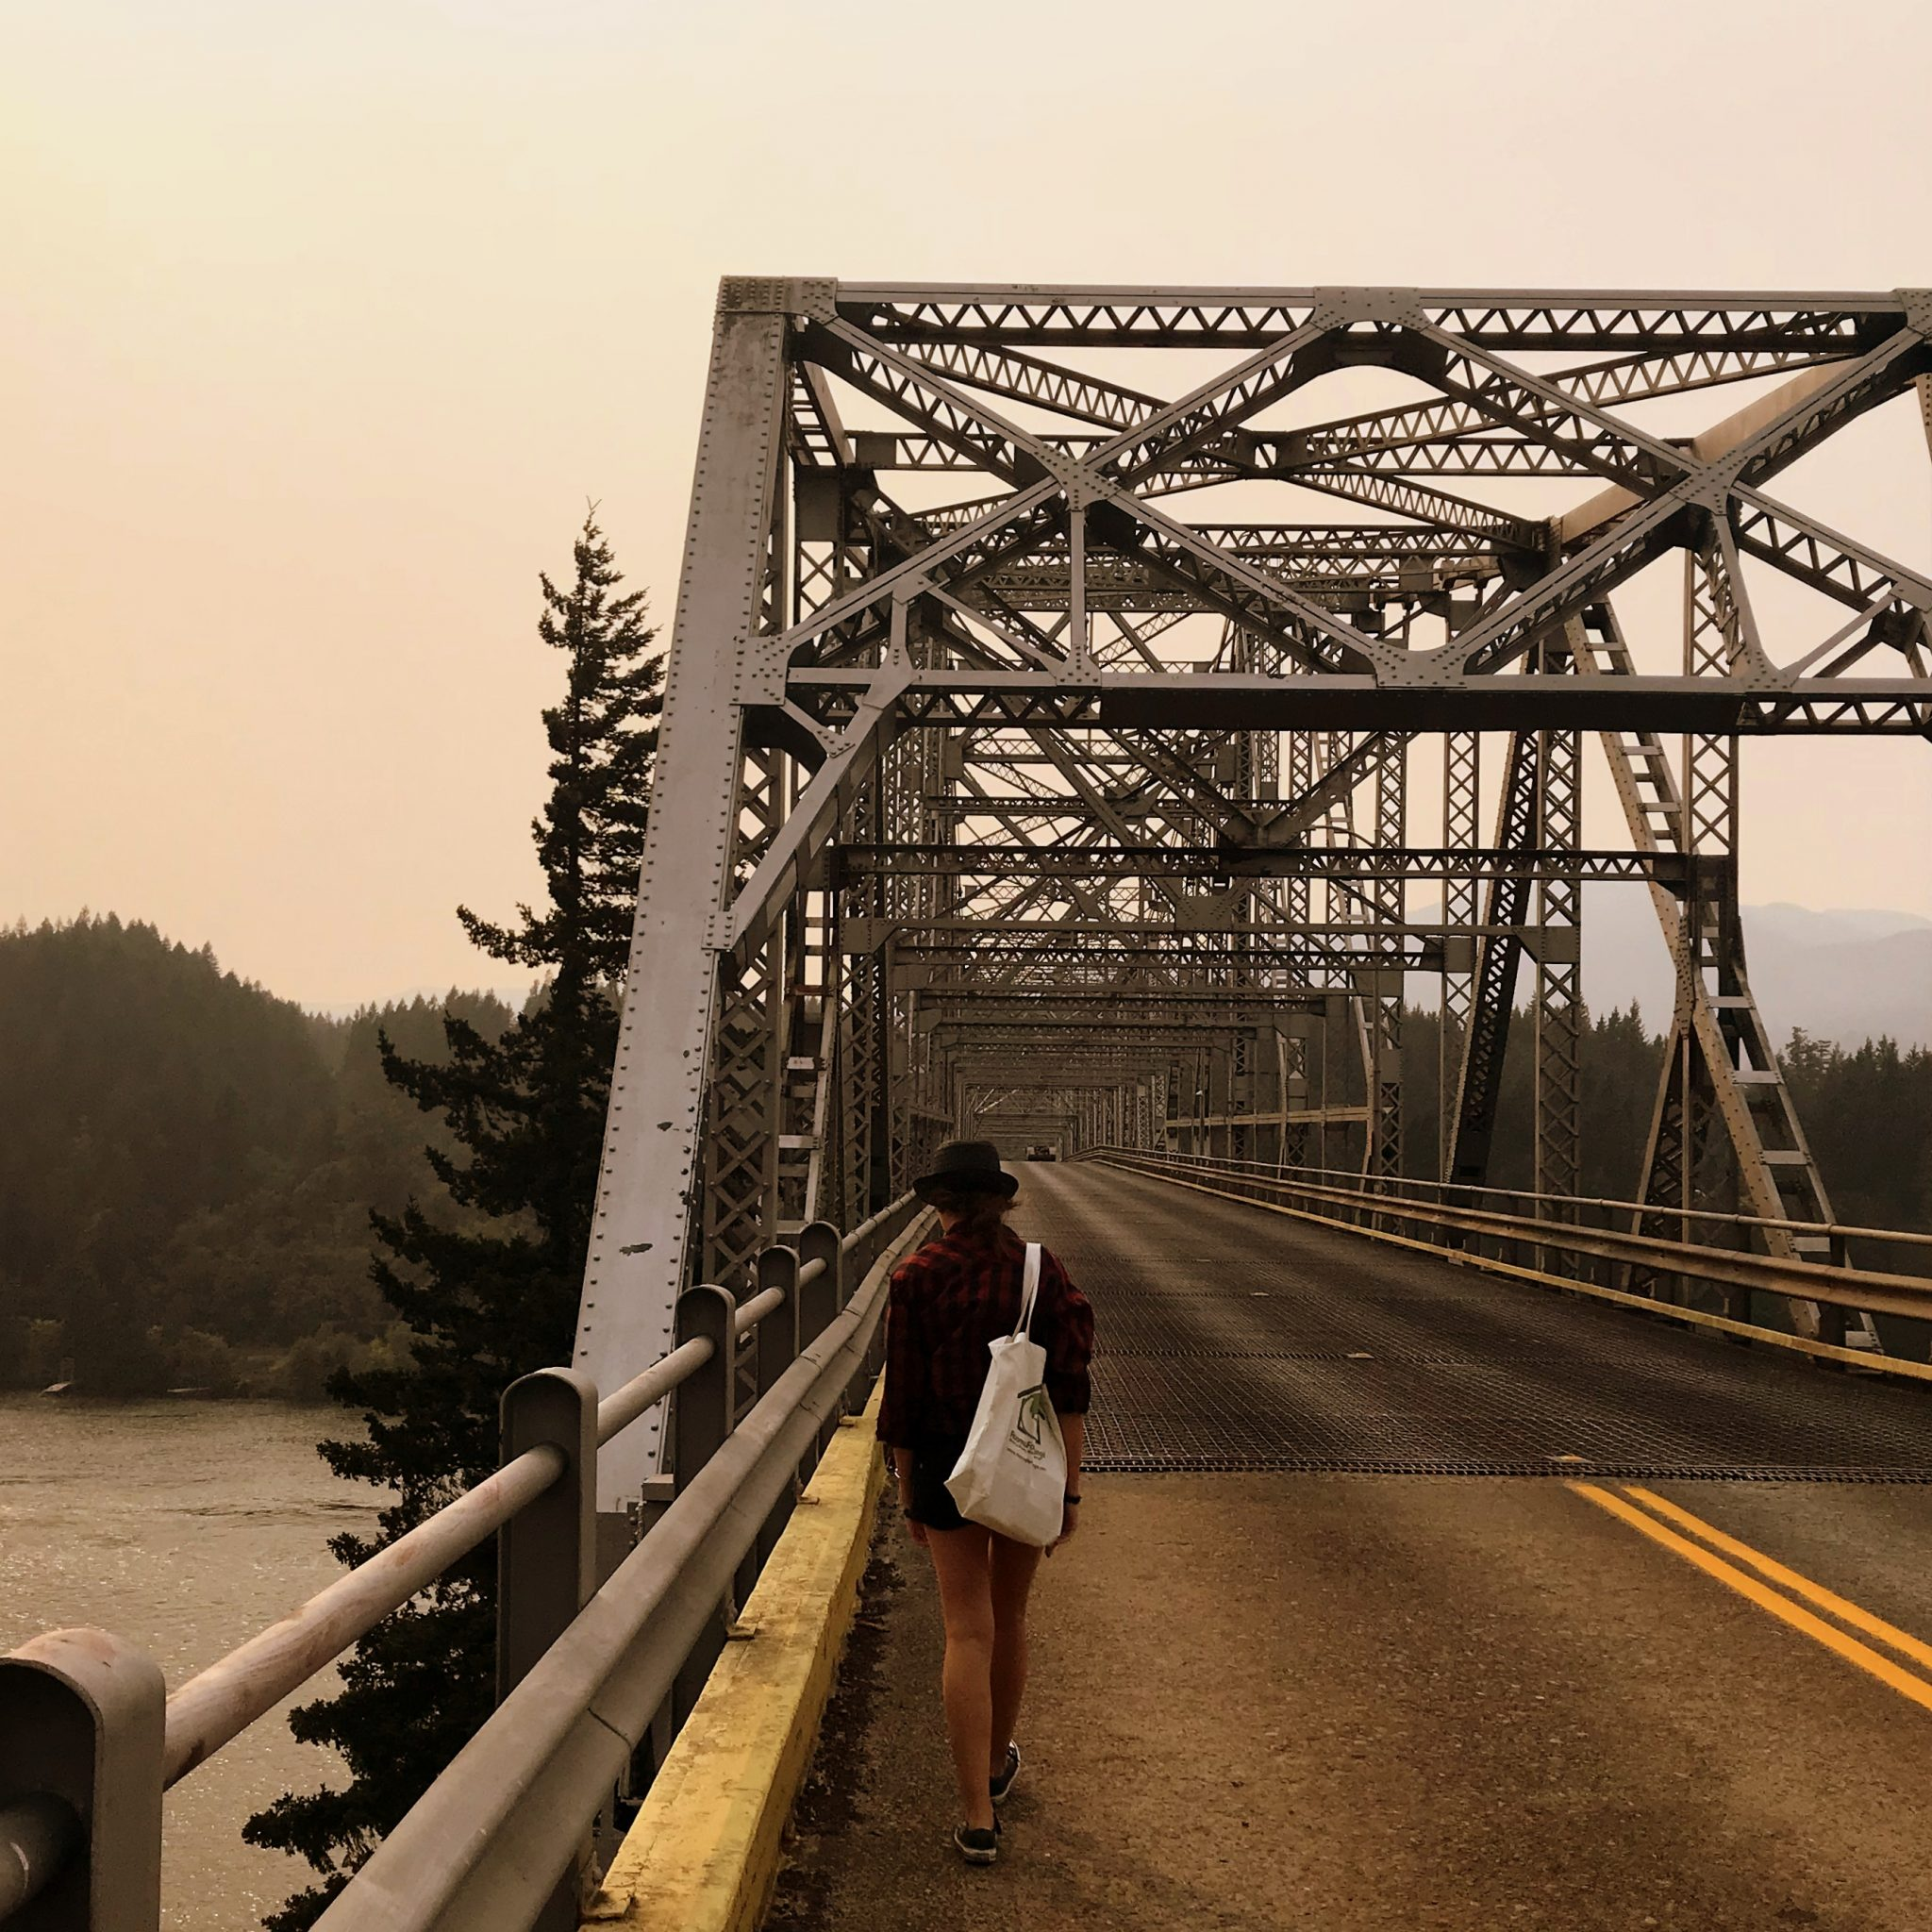 Walk (or drive) across the Bridge of the Gods to set foot in the state of Washington.